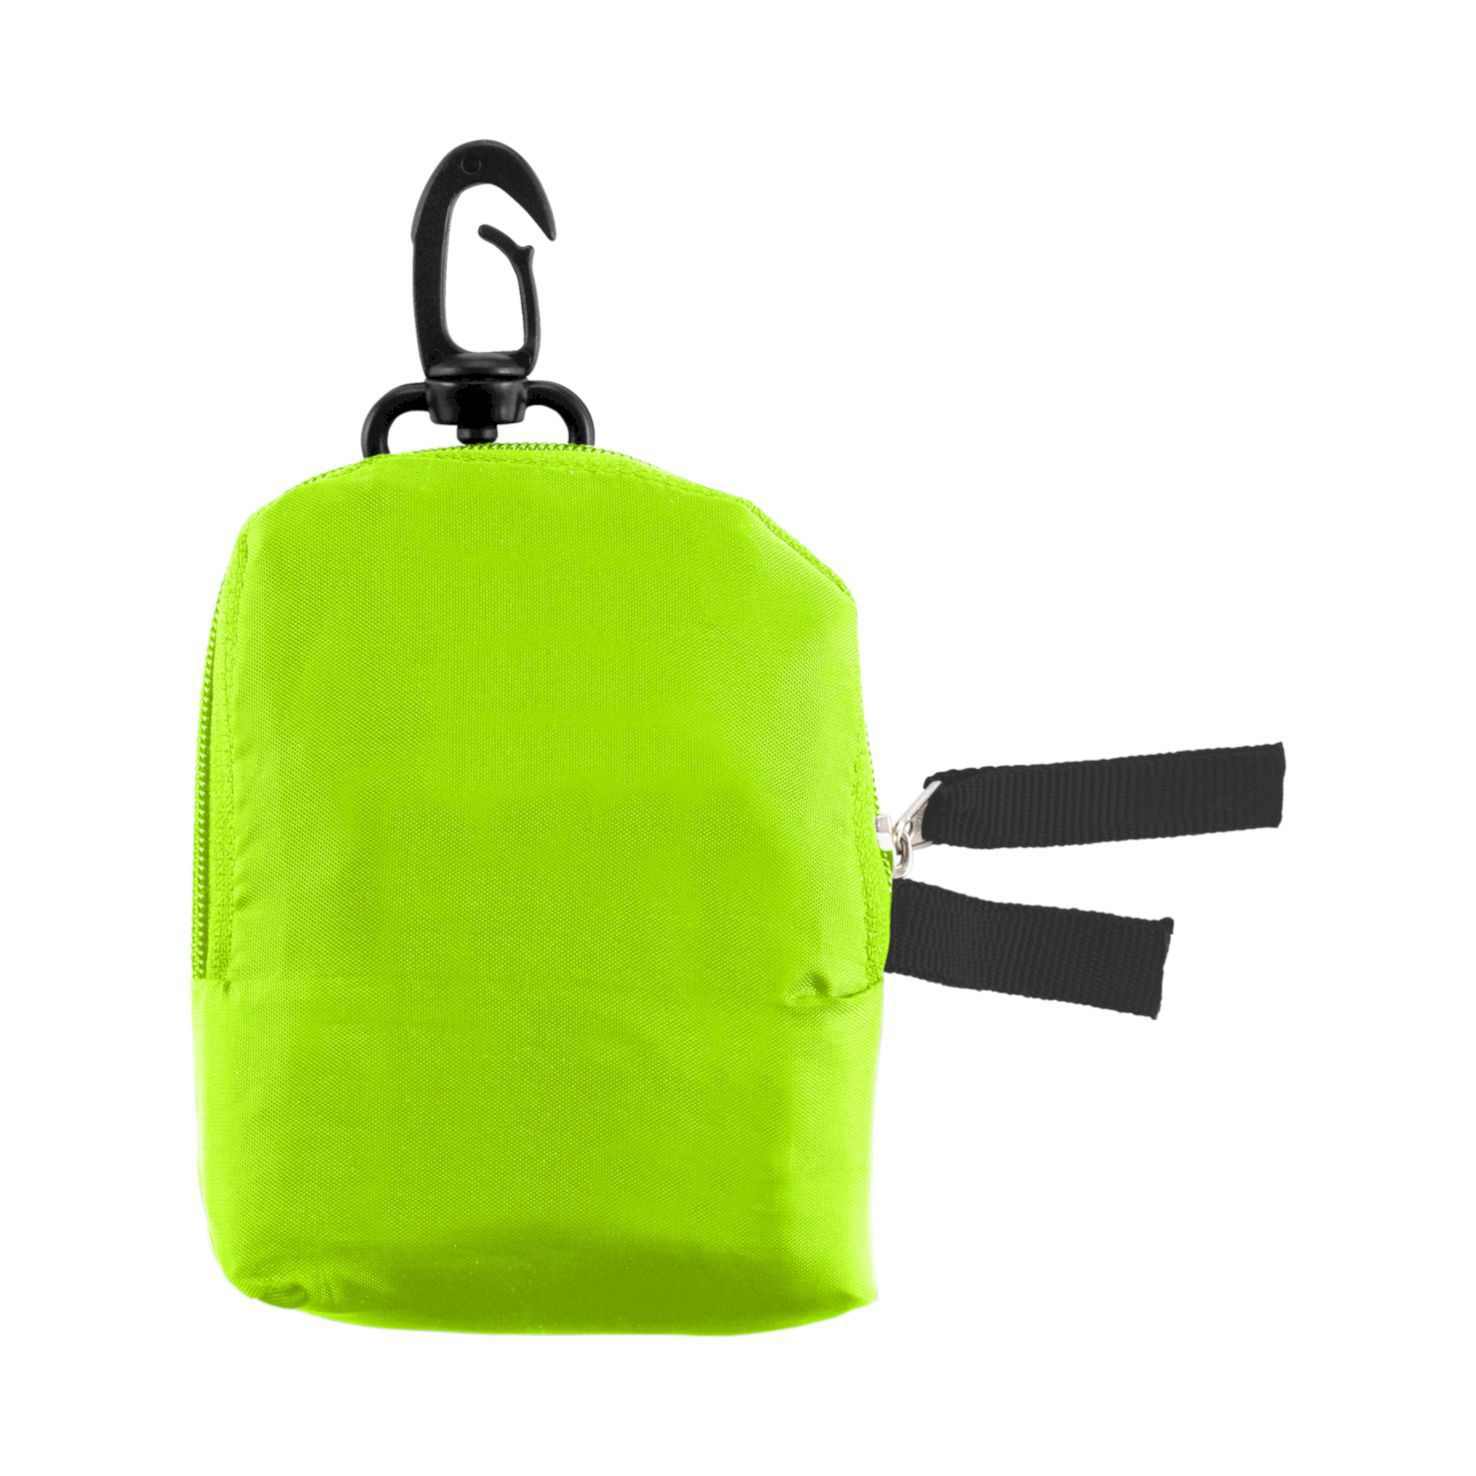 Lime Opvouwbare boodschappentas | Polyester